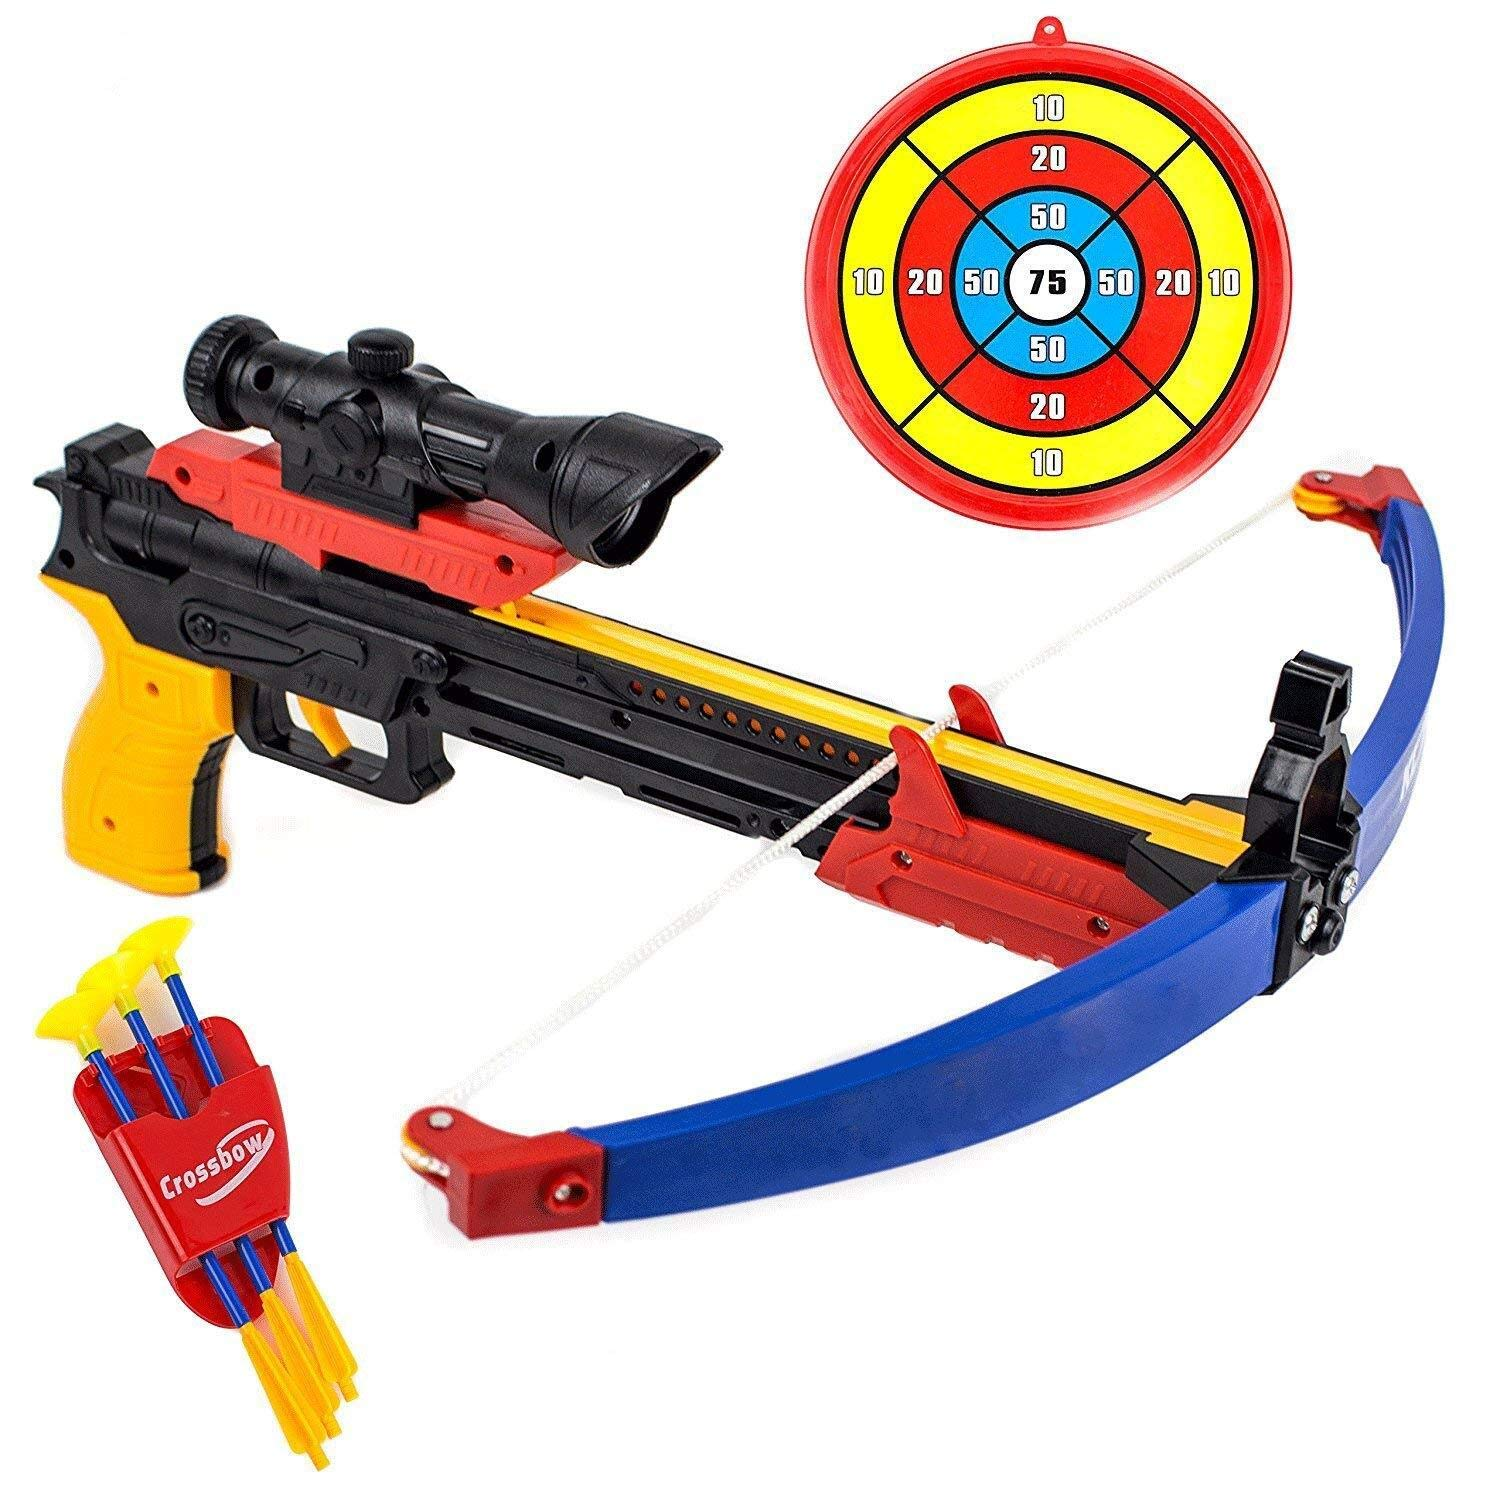 SHDZKJ Archery Bow and Arrow Toy Set with Target Outdoor Sport Game by SHDZKJ